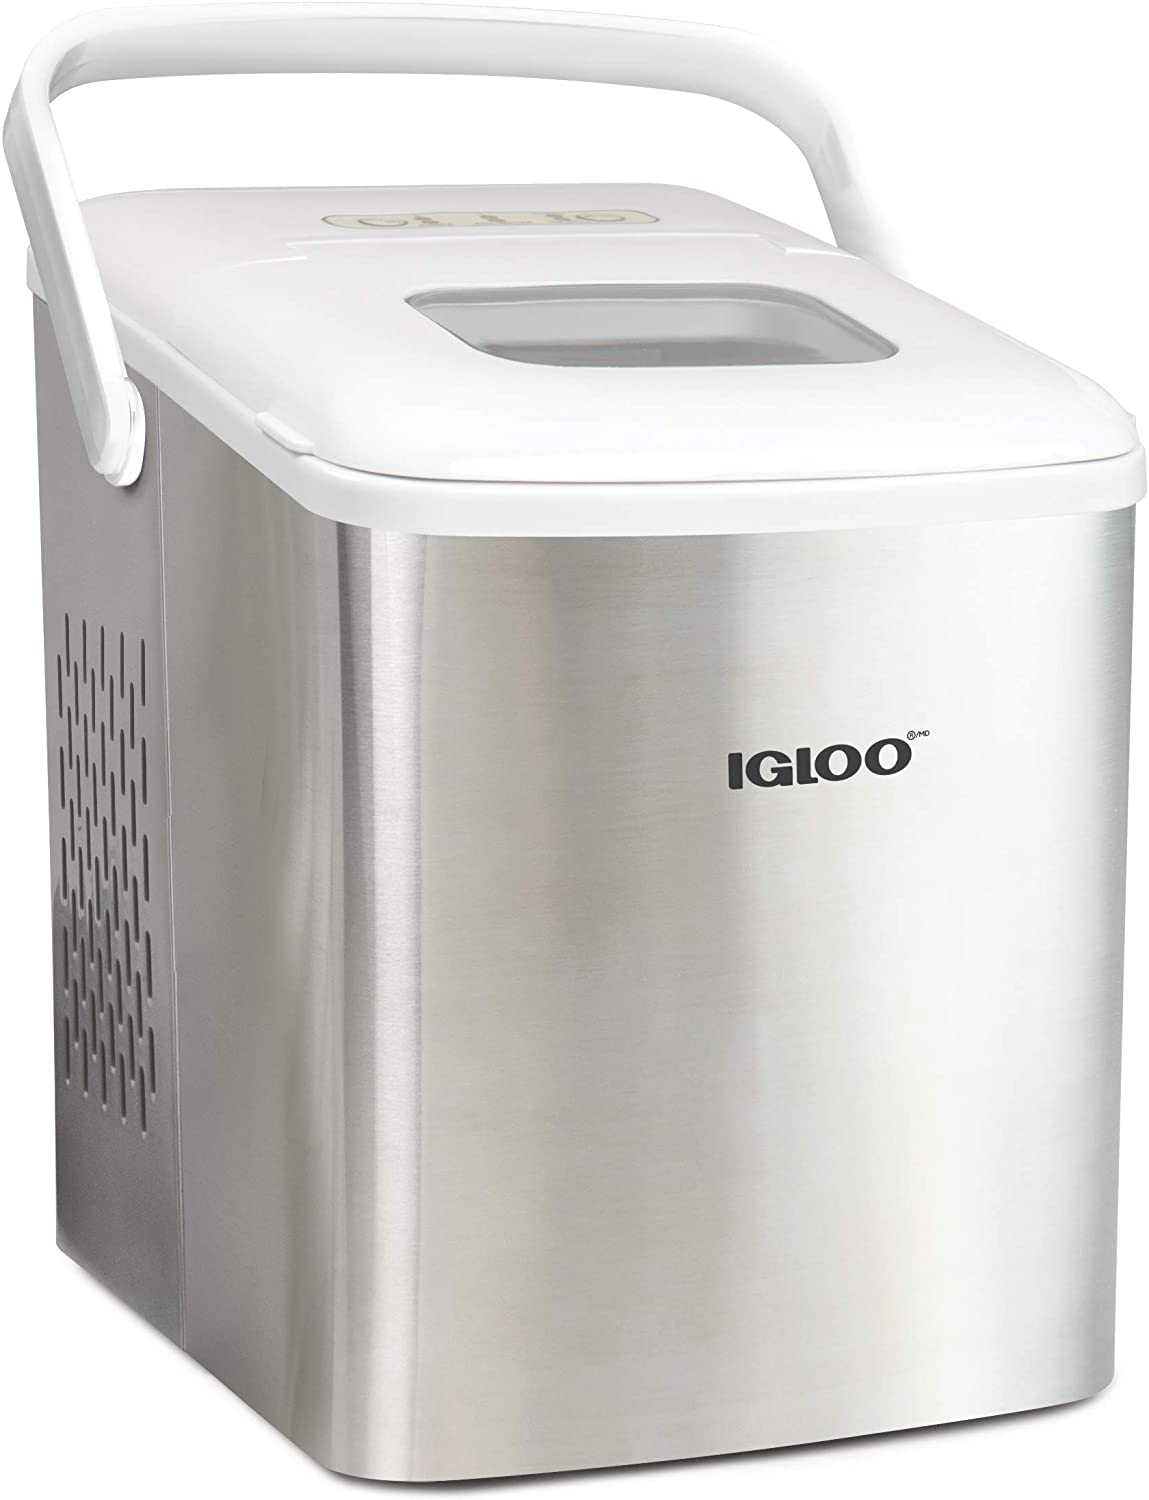 igloo-ICEB26HNSSWL-Stainless-Steel-Automatic-Self-Cleaning-Portable-Electric-Countertop-Ice-Maker-Machin